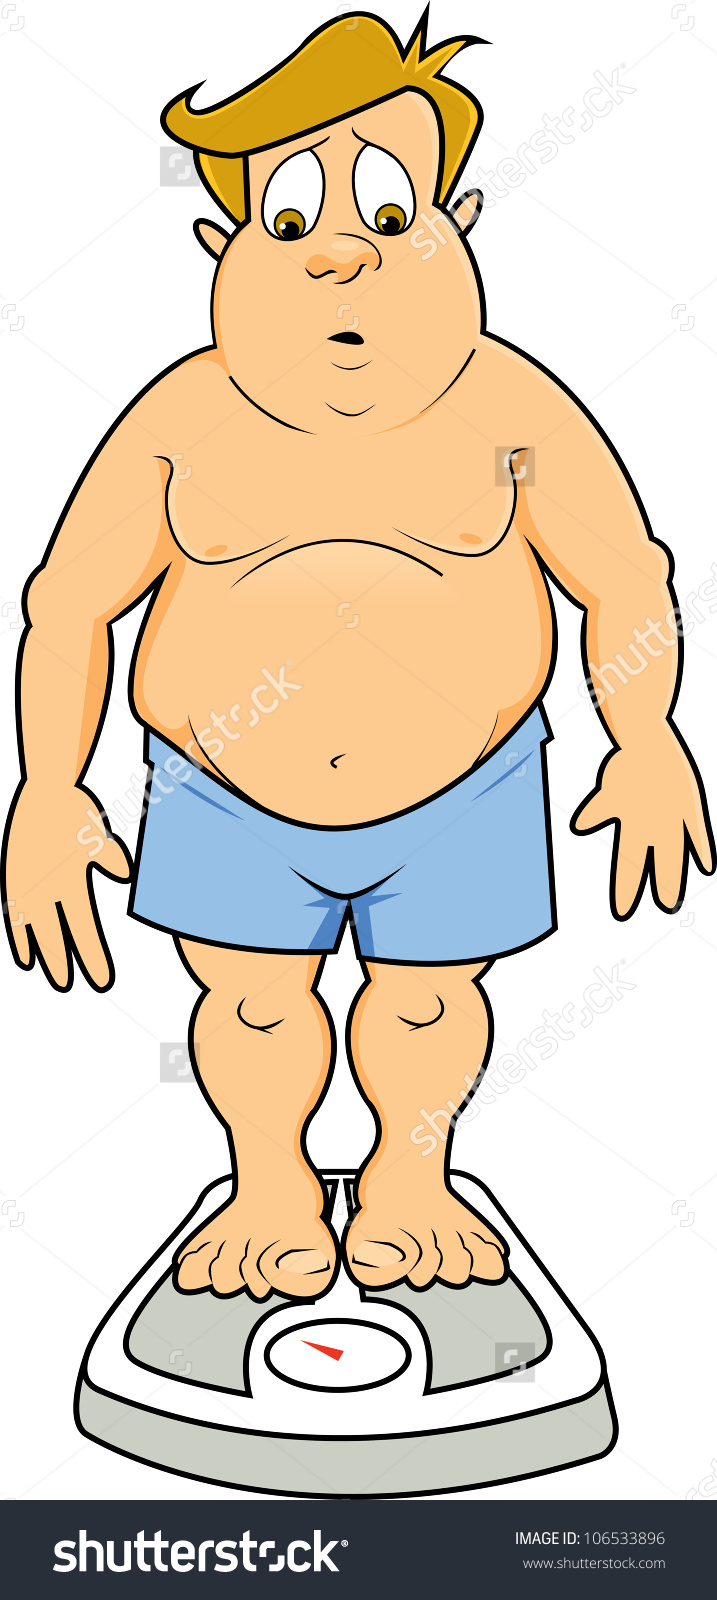 Overweight Man Underwear Standing On Scale Stock Vector 106533896.